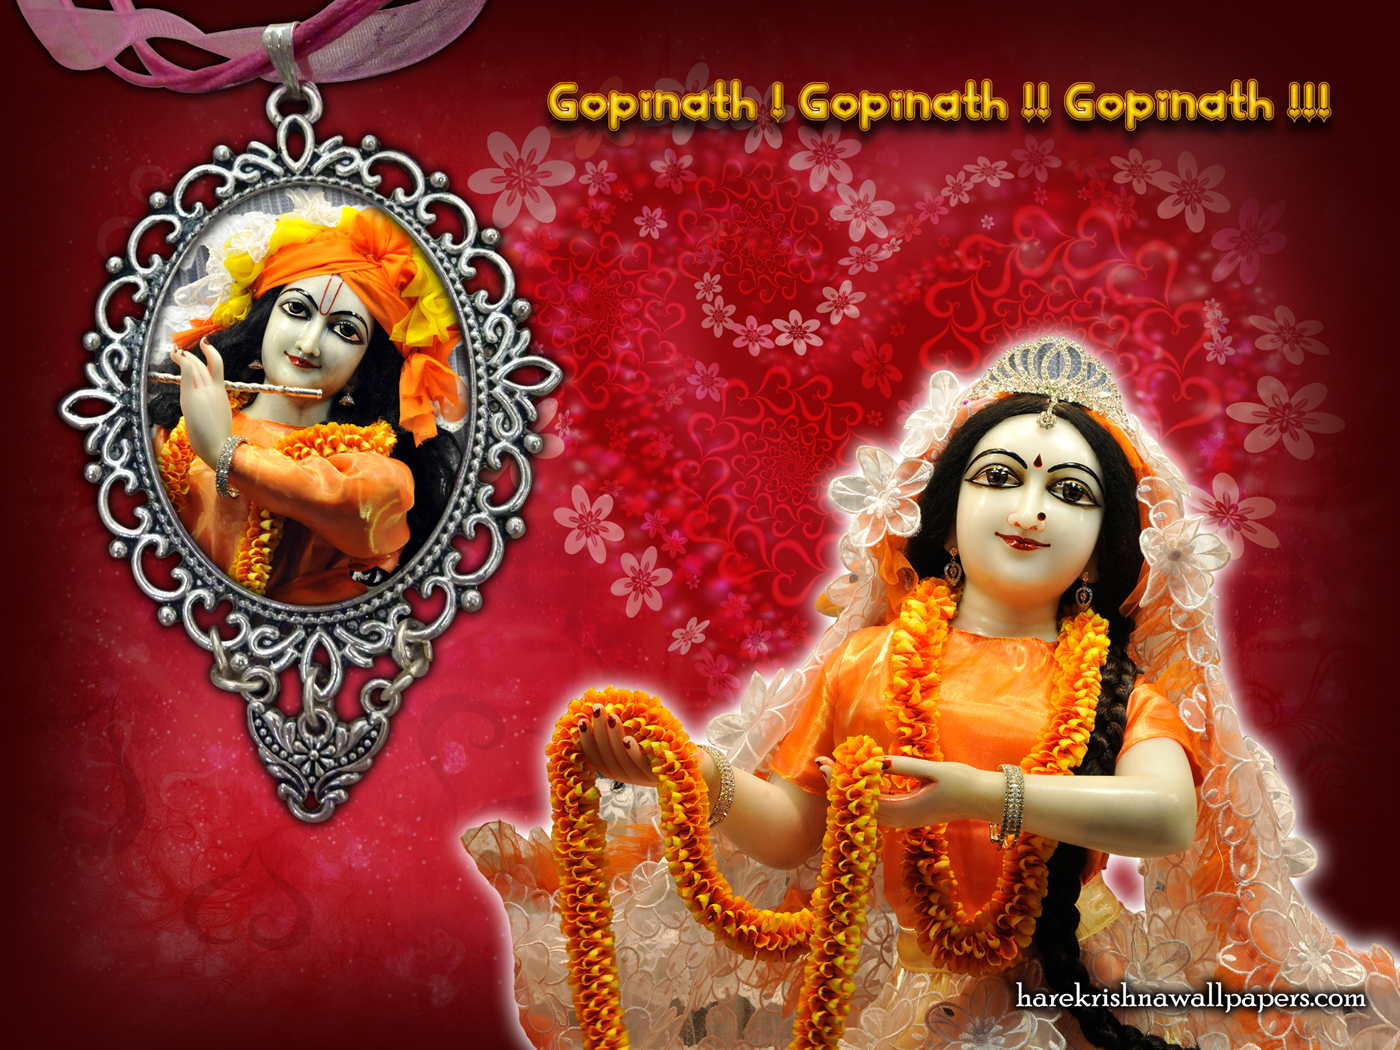 Sri Sri Radha Gopinath Wallpaper (001) Size 1400x1050 Download